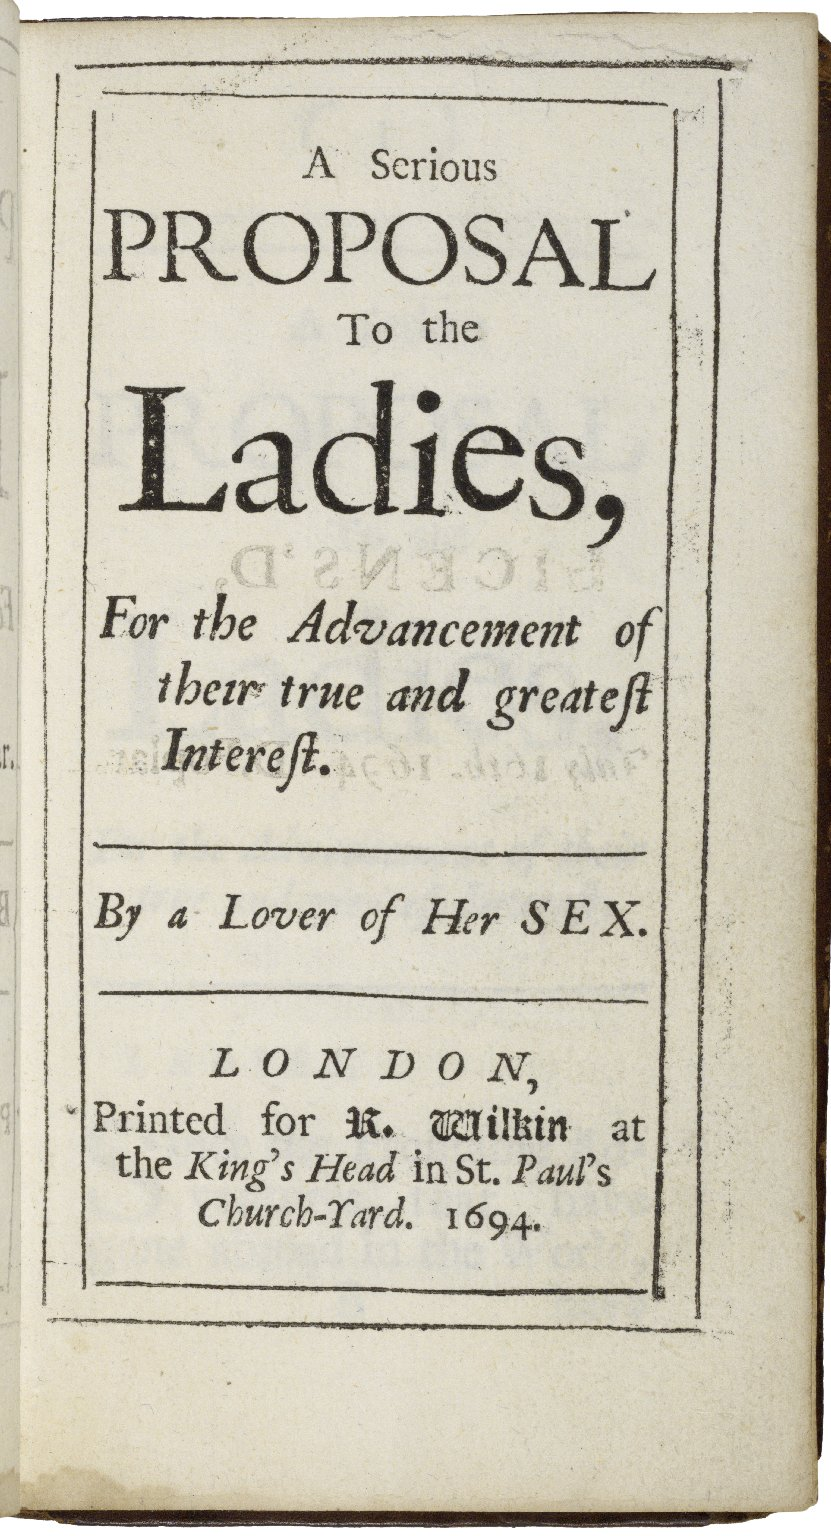 [Serious proposal to the ladies. Part 1] A serious proposal to the ladies, for the advancement of their true and greatest interest. By a lover of her sex.